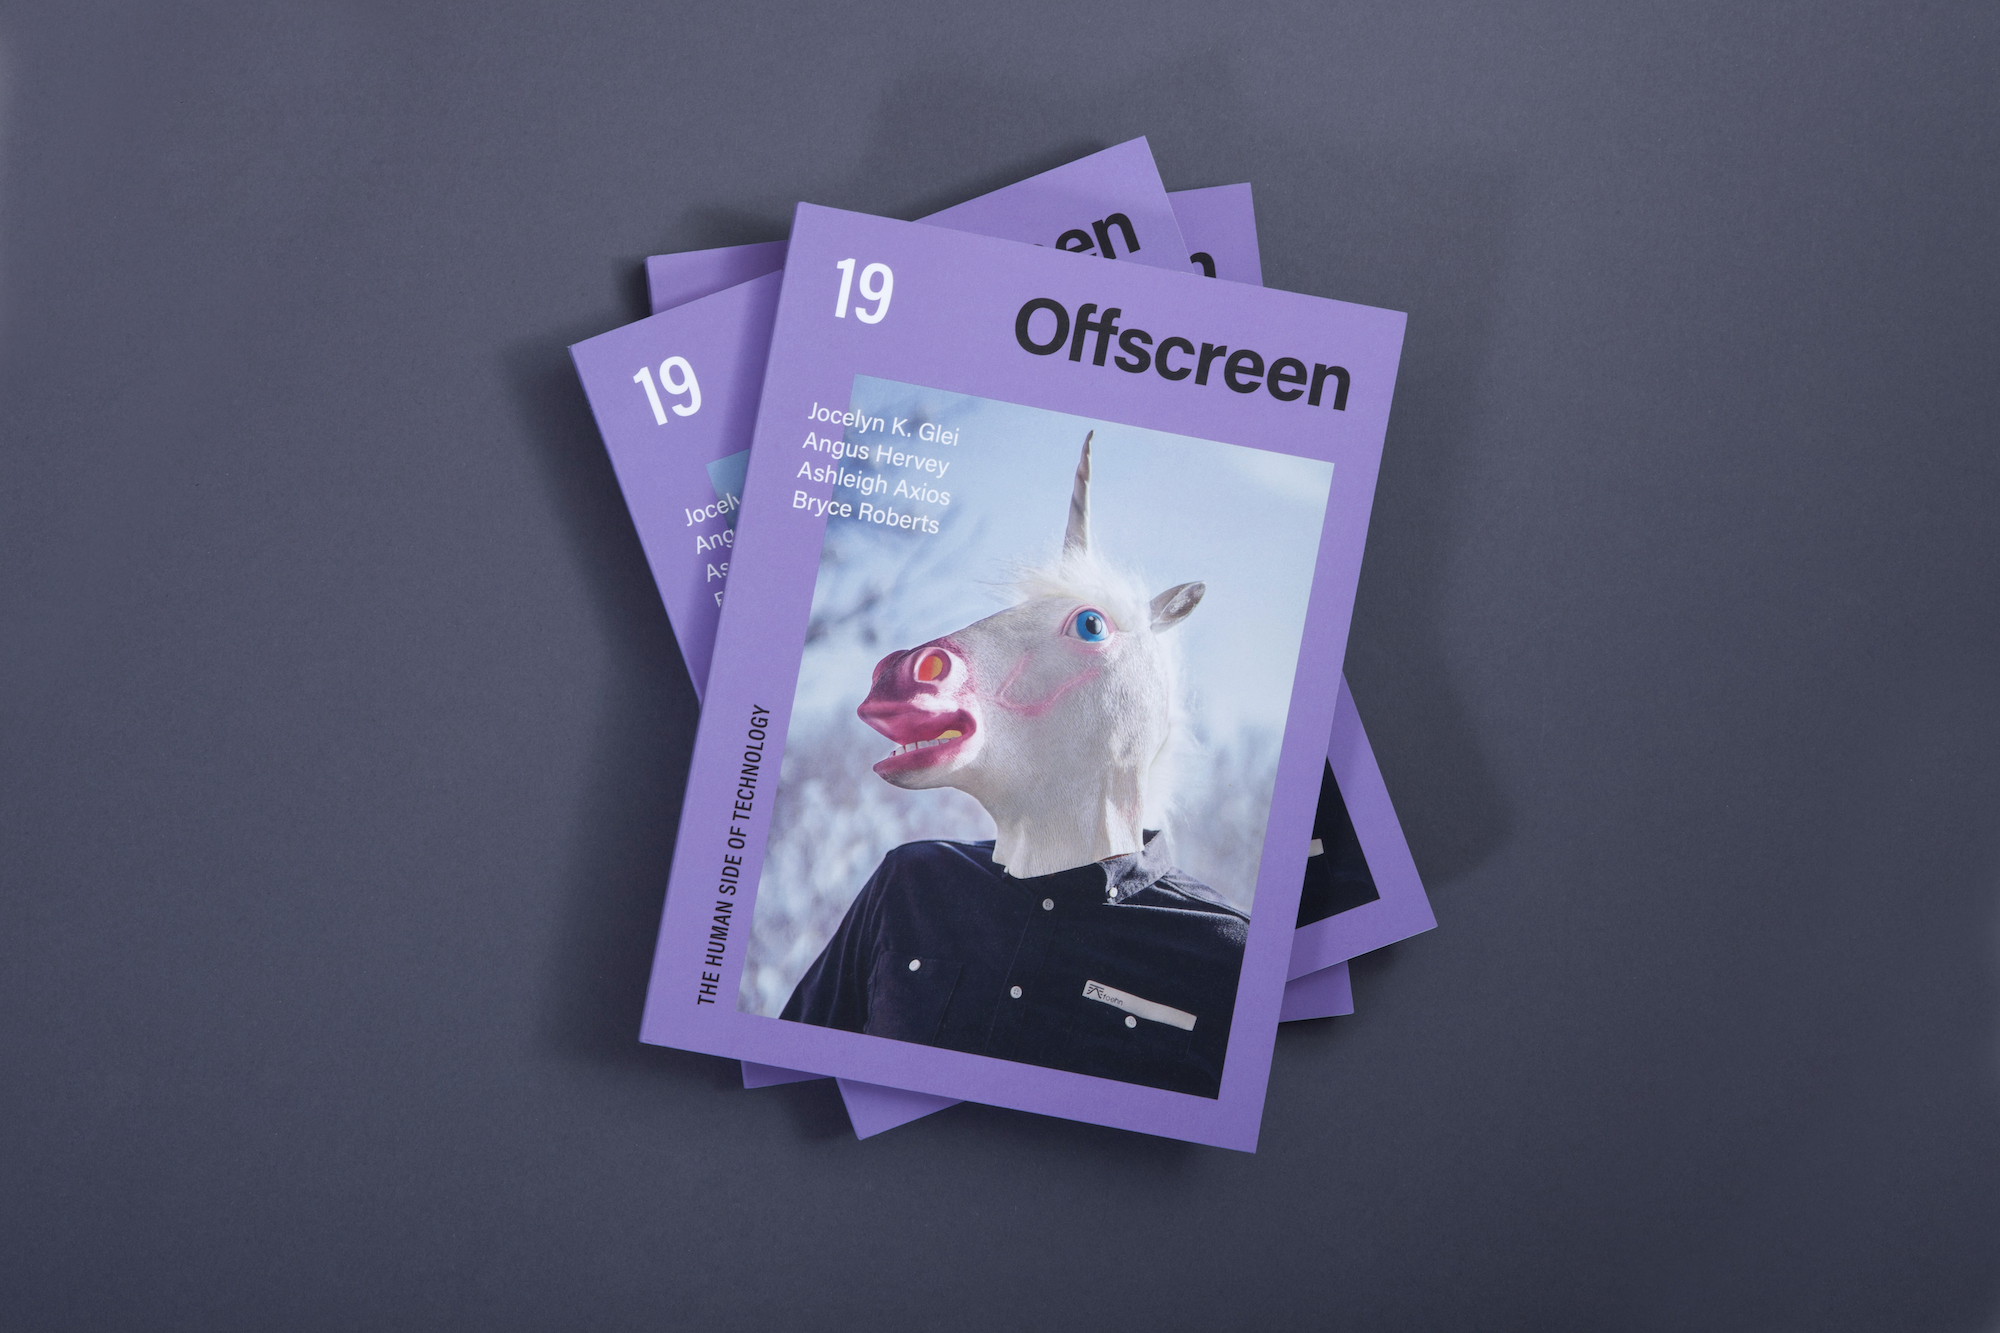 Issue #19 of Offscreen Magazine